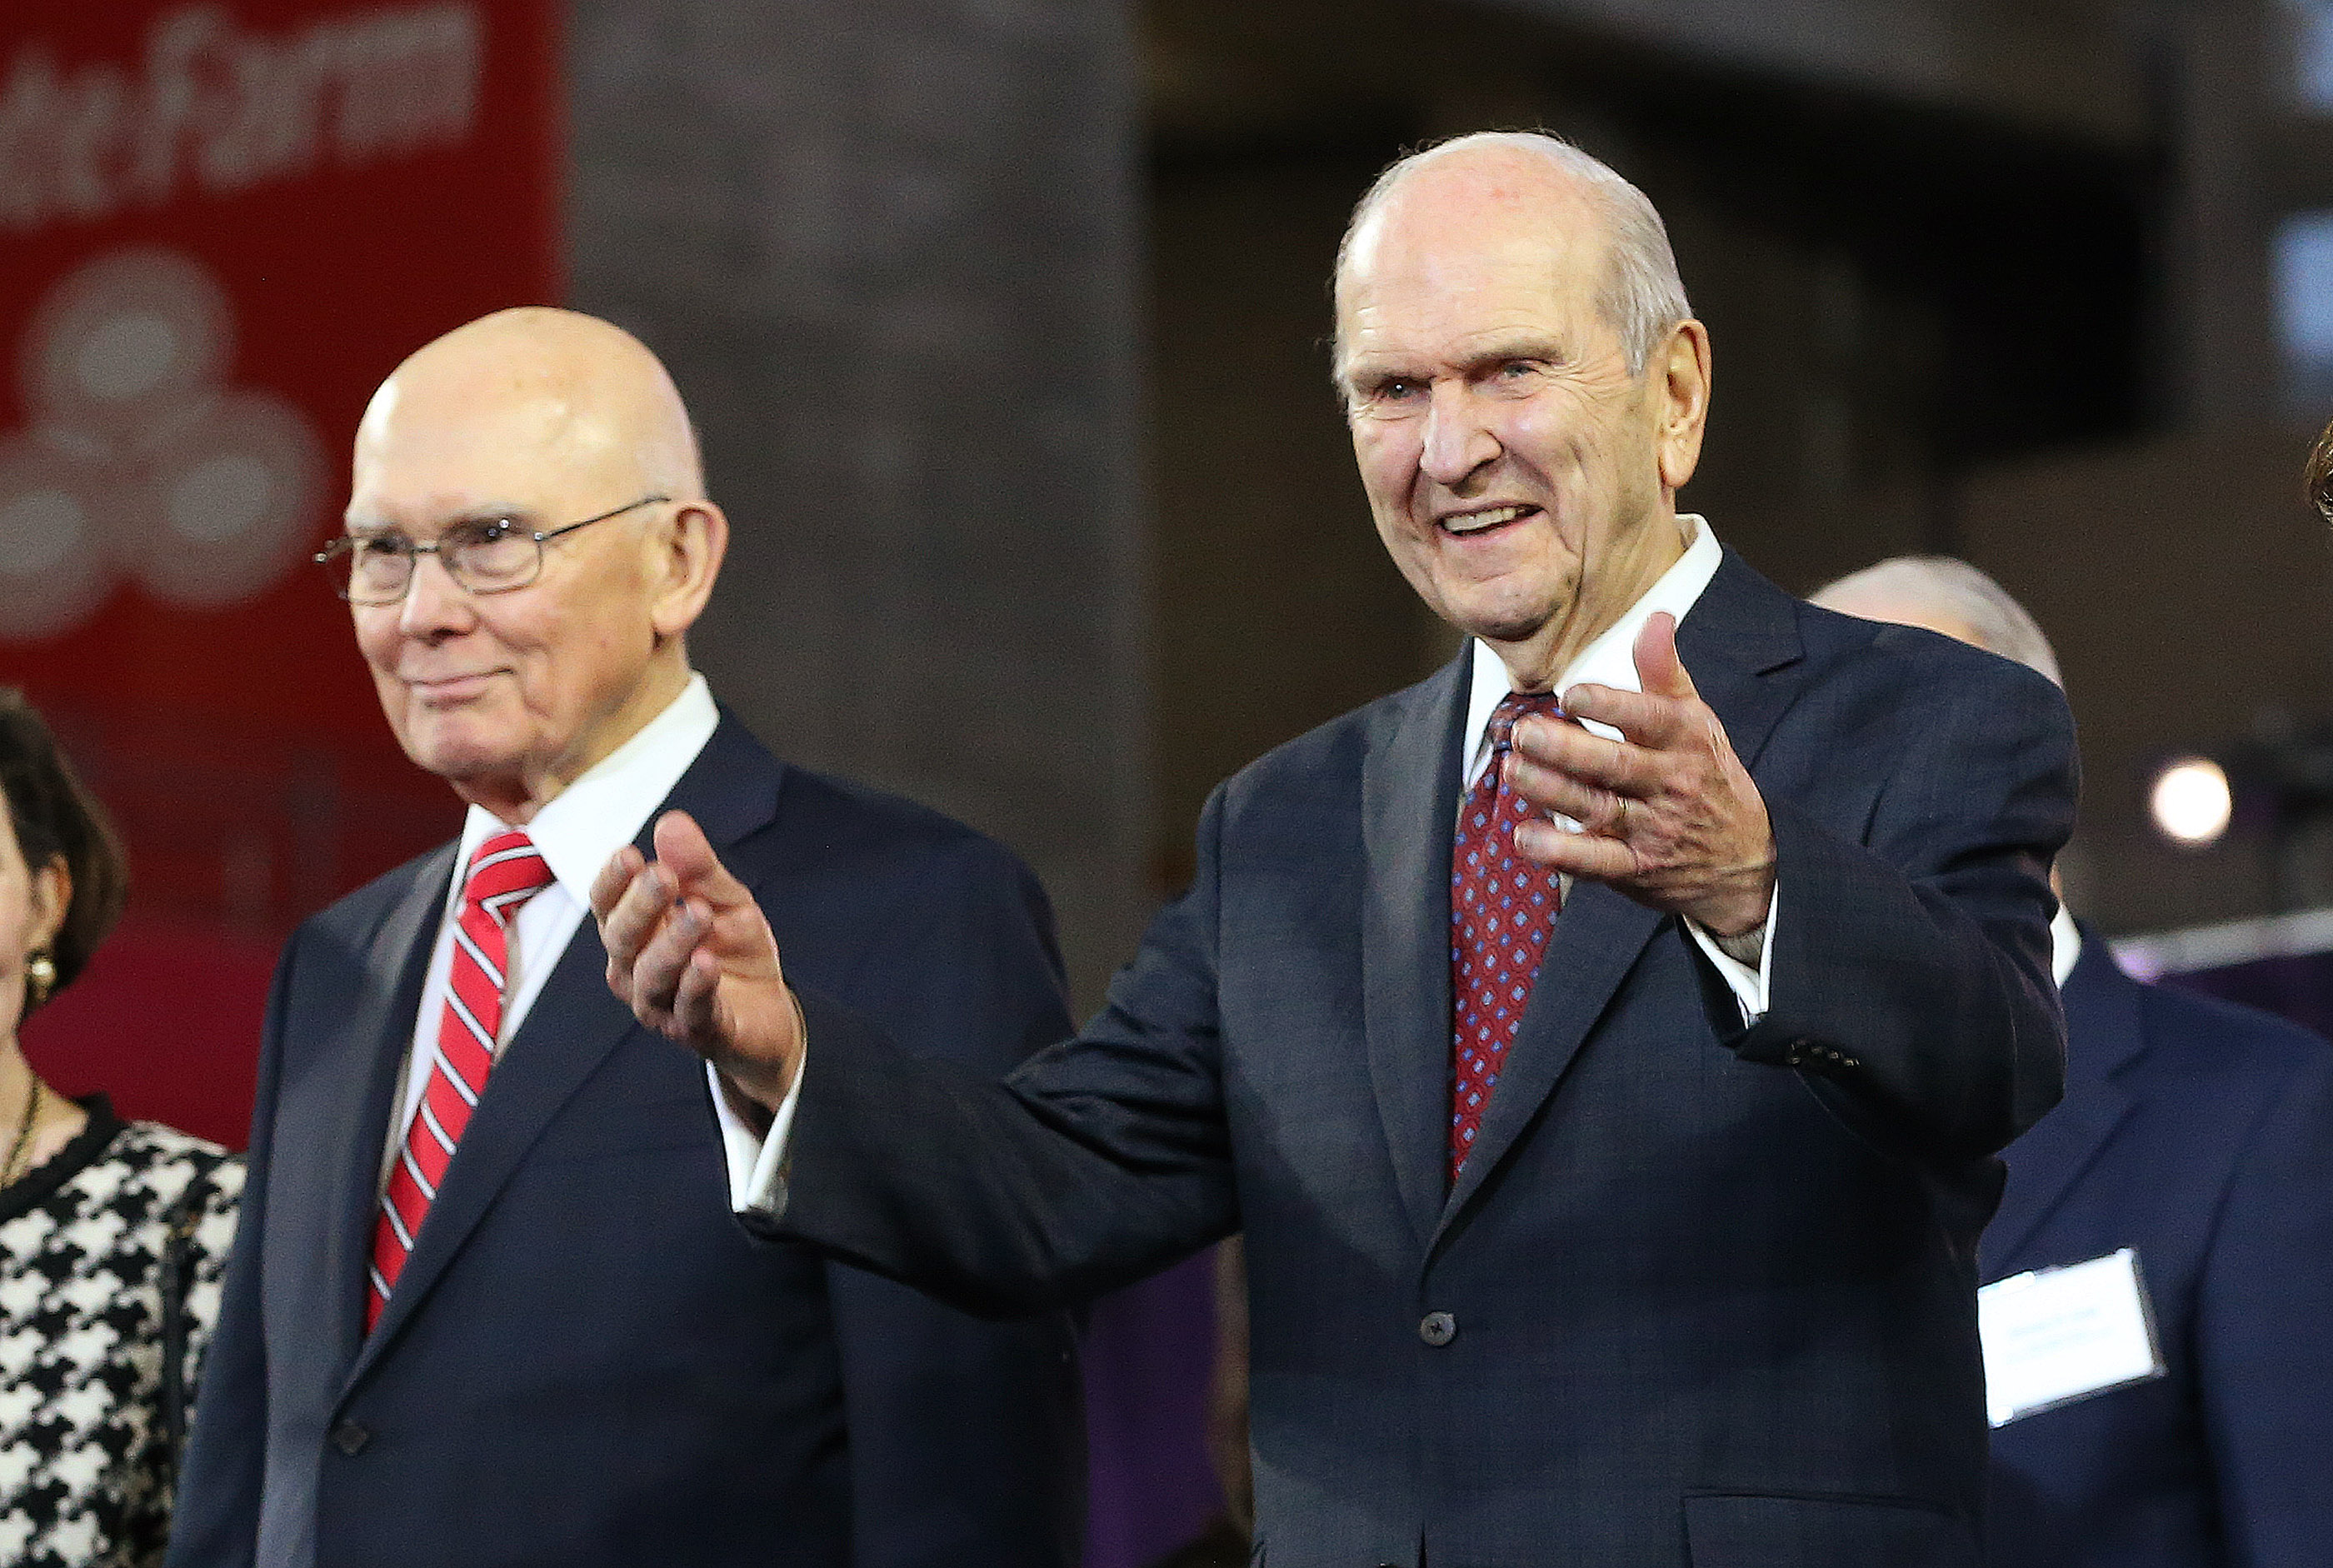 President Russell M. Nelson of The Church of Jesus Christ of Latter-day Saints gestures to attendees at the State Farm Stadium in Phoenix on Sunday, Feb. 10, 2019. President Nelson is accompanied by President Dallin H. Oaks, first counselor in the First Presidency.